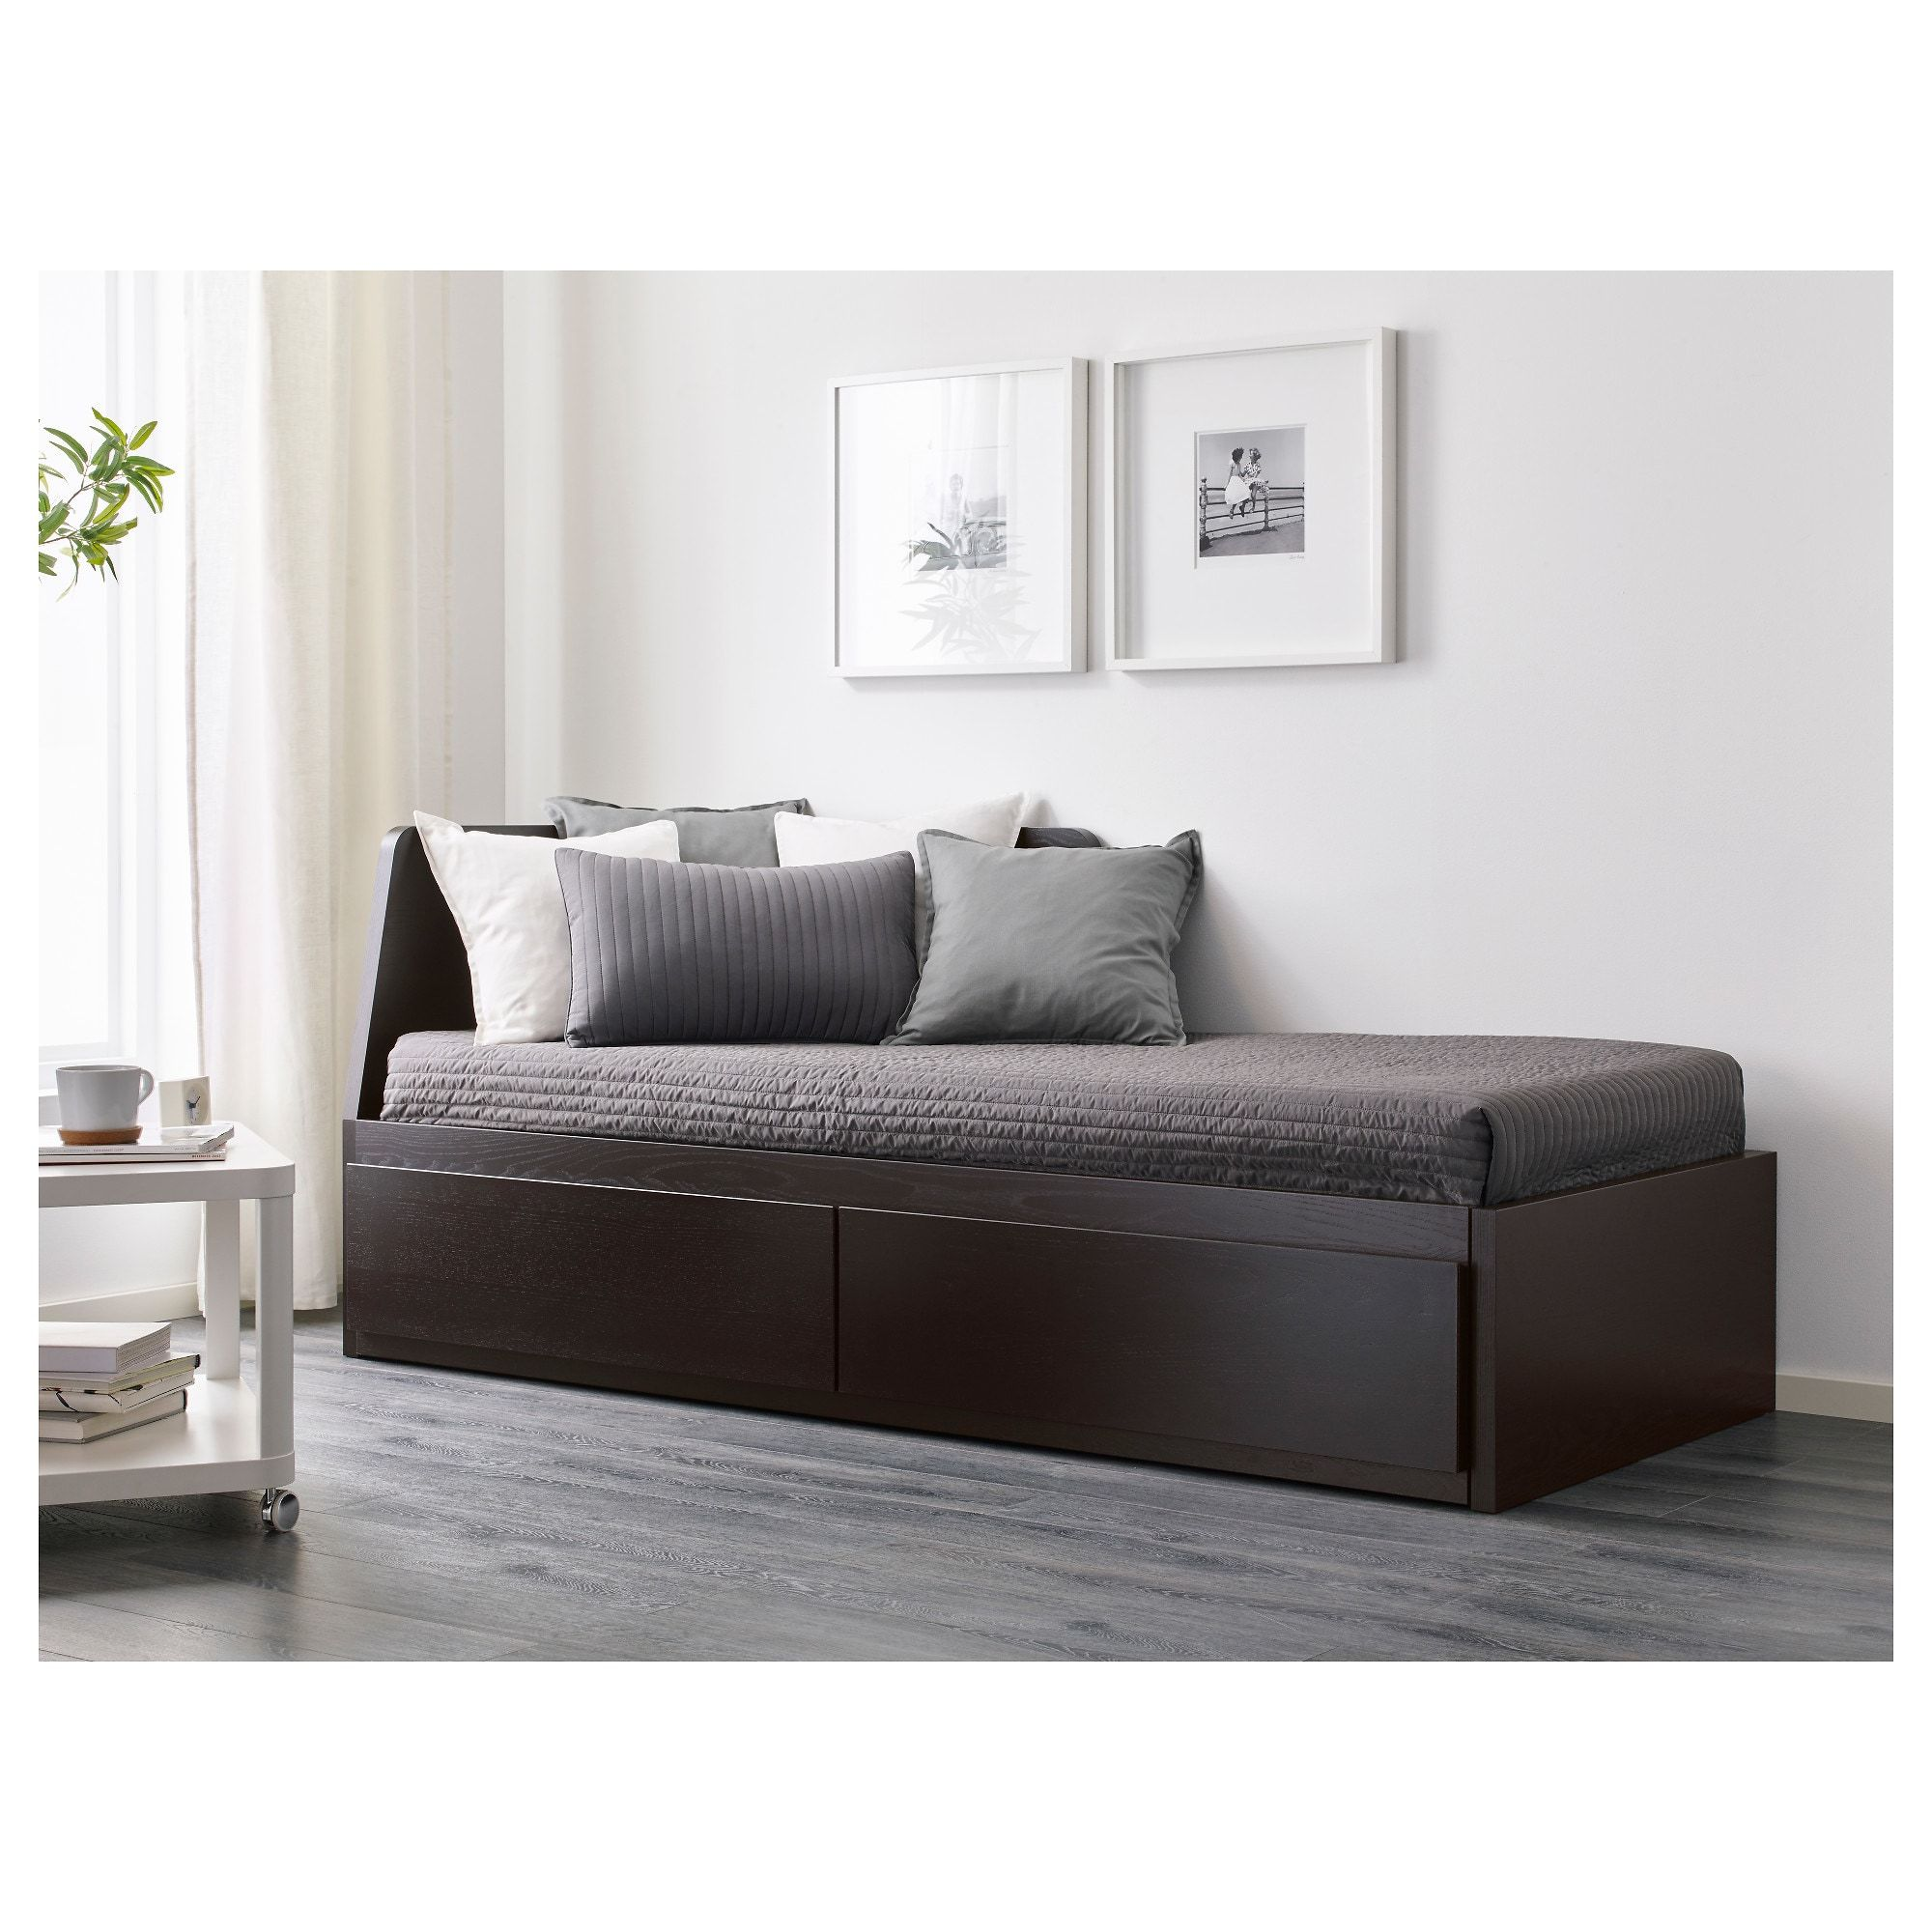 Flekke Daybed Frame With 2 Drawers Black Brown Twin Ikea Day Bed Frame Comfortable Sofa Bed Slats